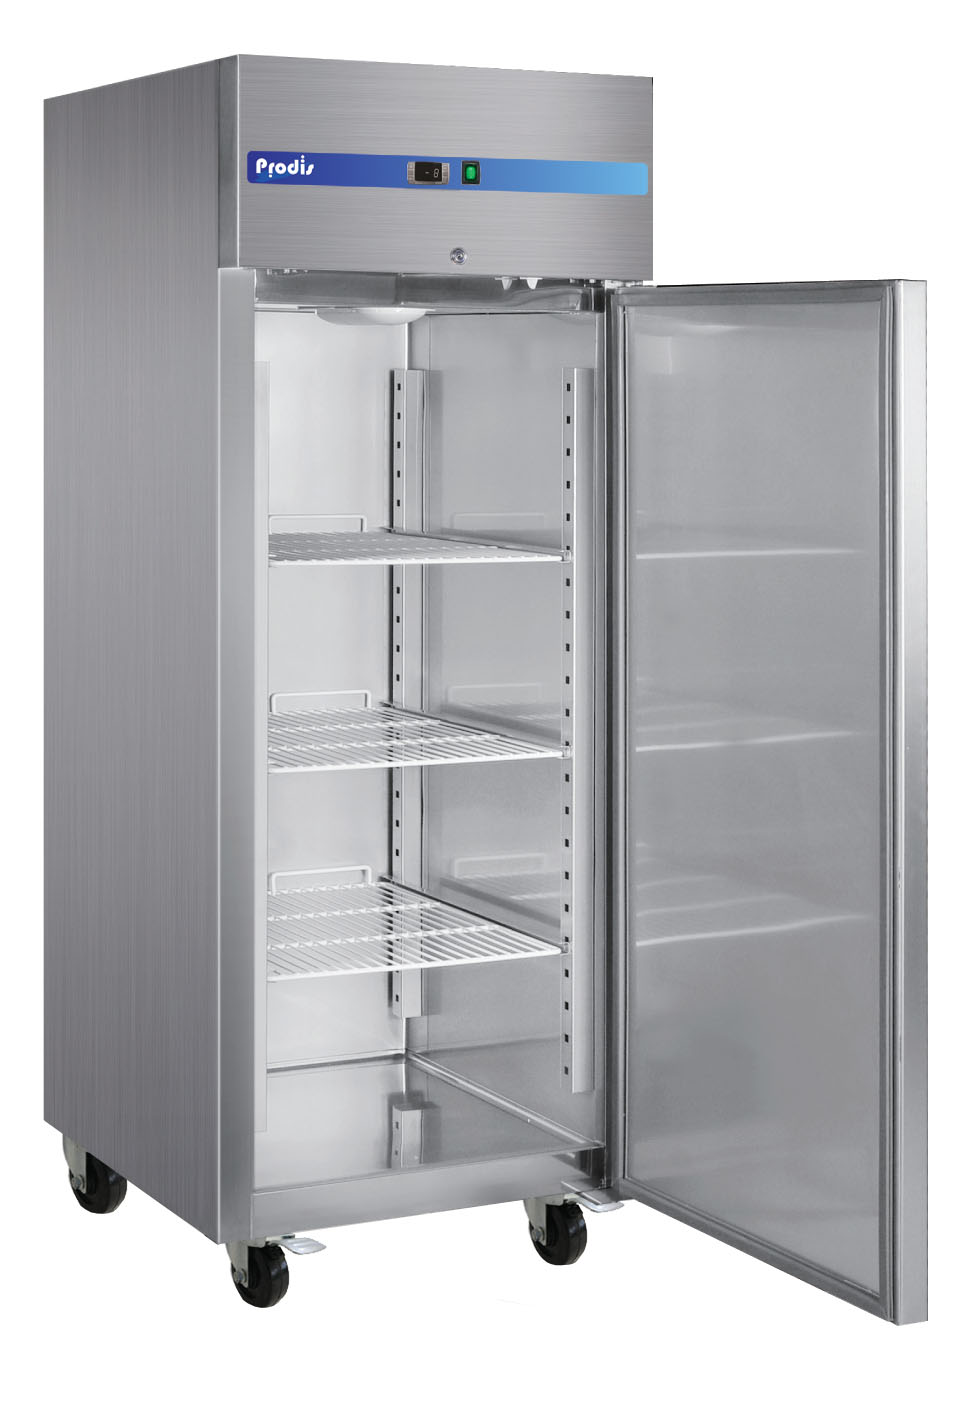 Prodis GRN-1F Professional Single Door Stainless Steel Service Freezer - 595 Litres